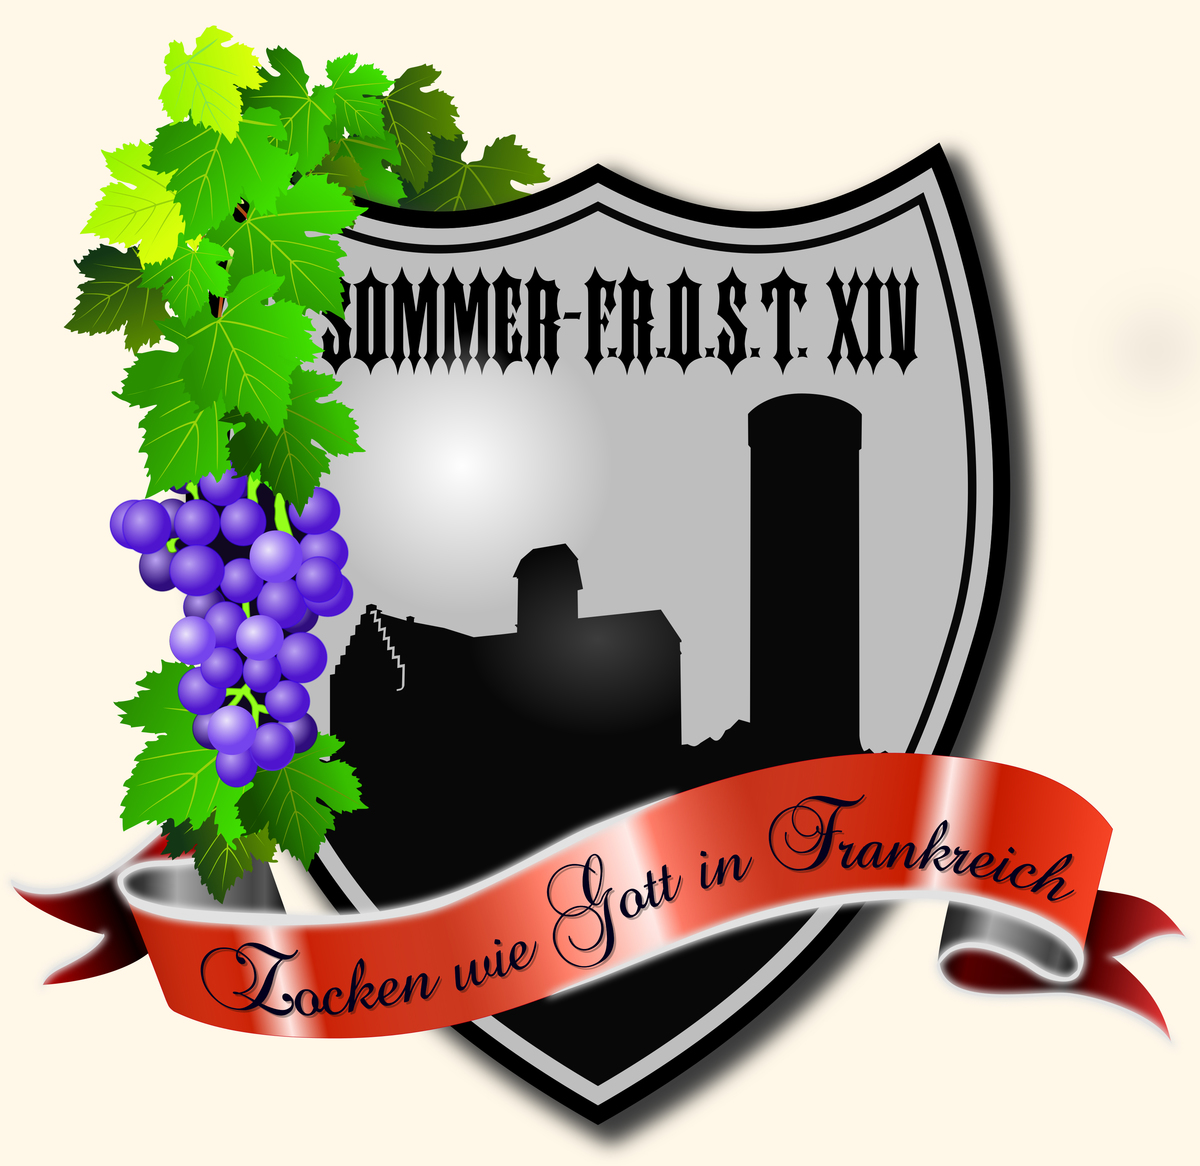 Sommer-FROST XIV 01